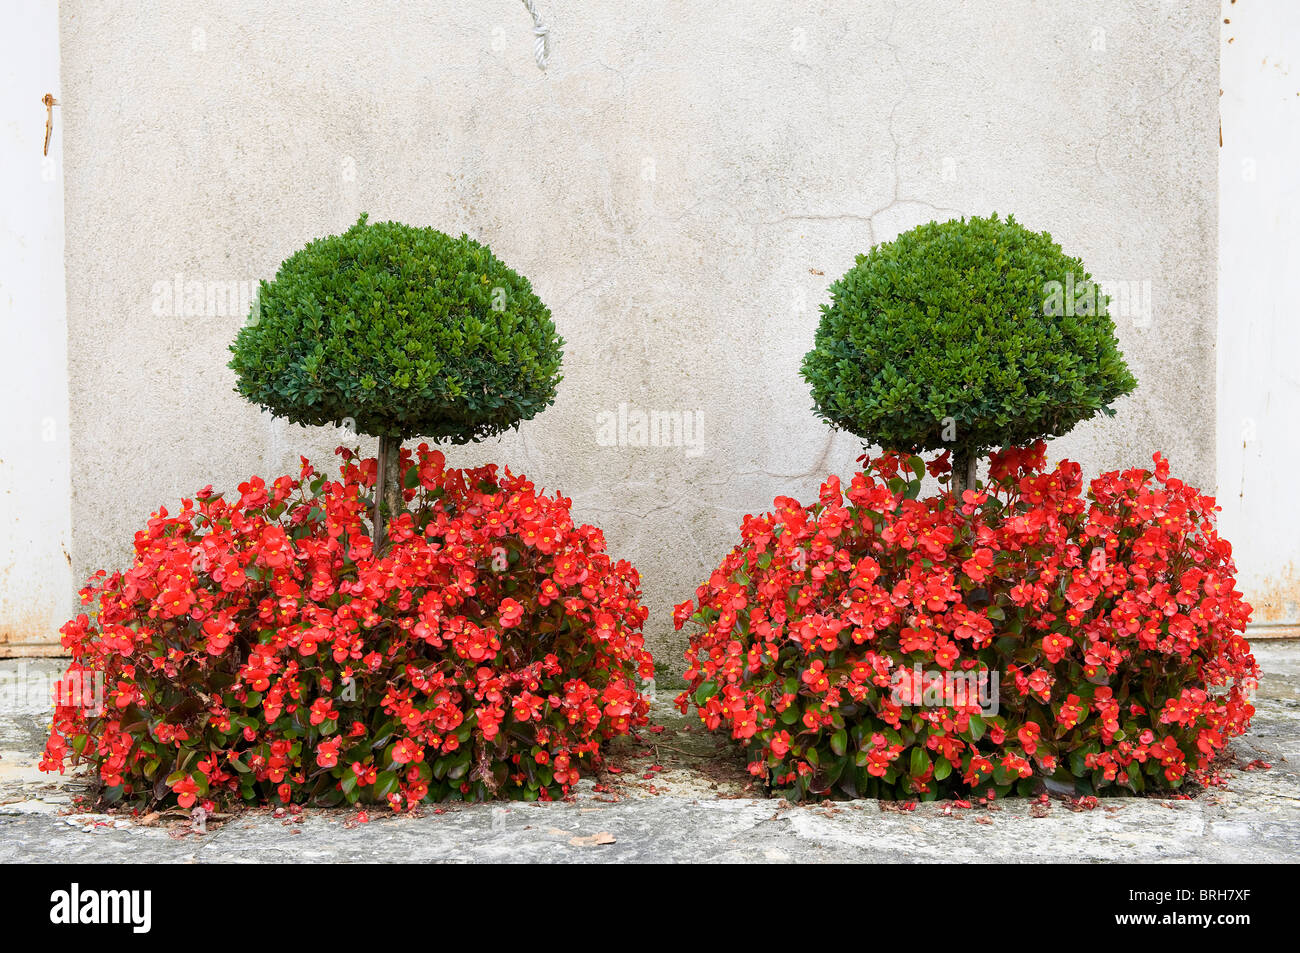 clipped yew trees and red flowers, egreville, france - Stock Image